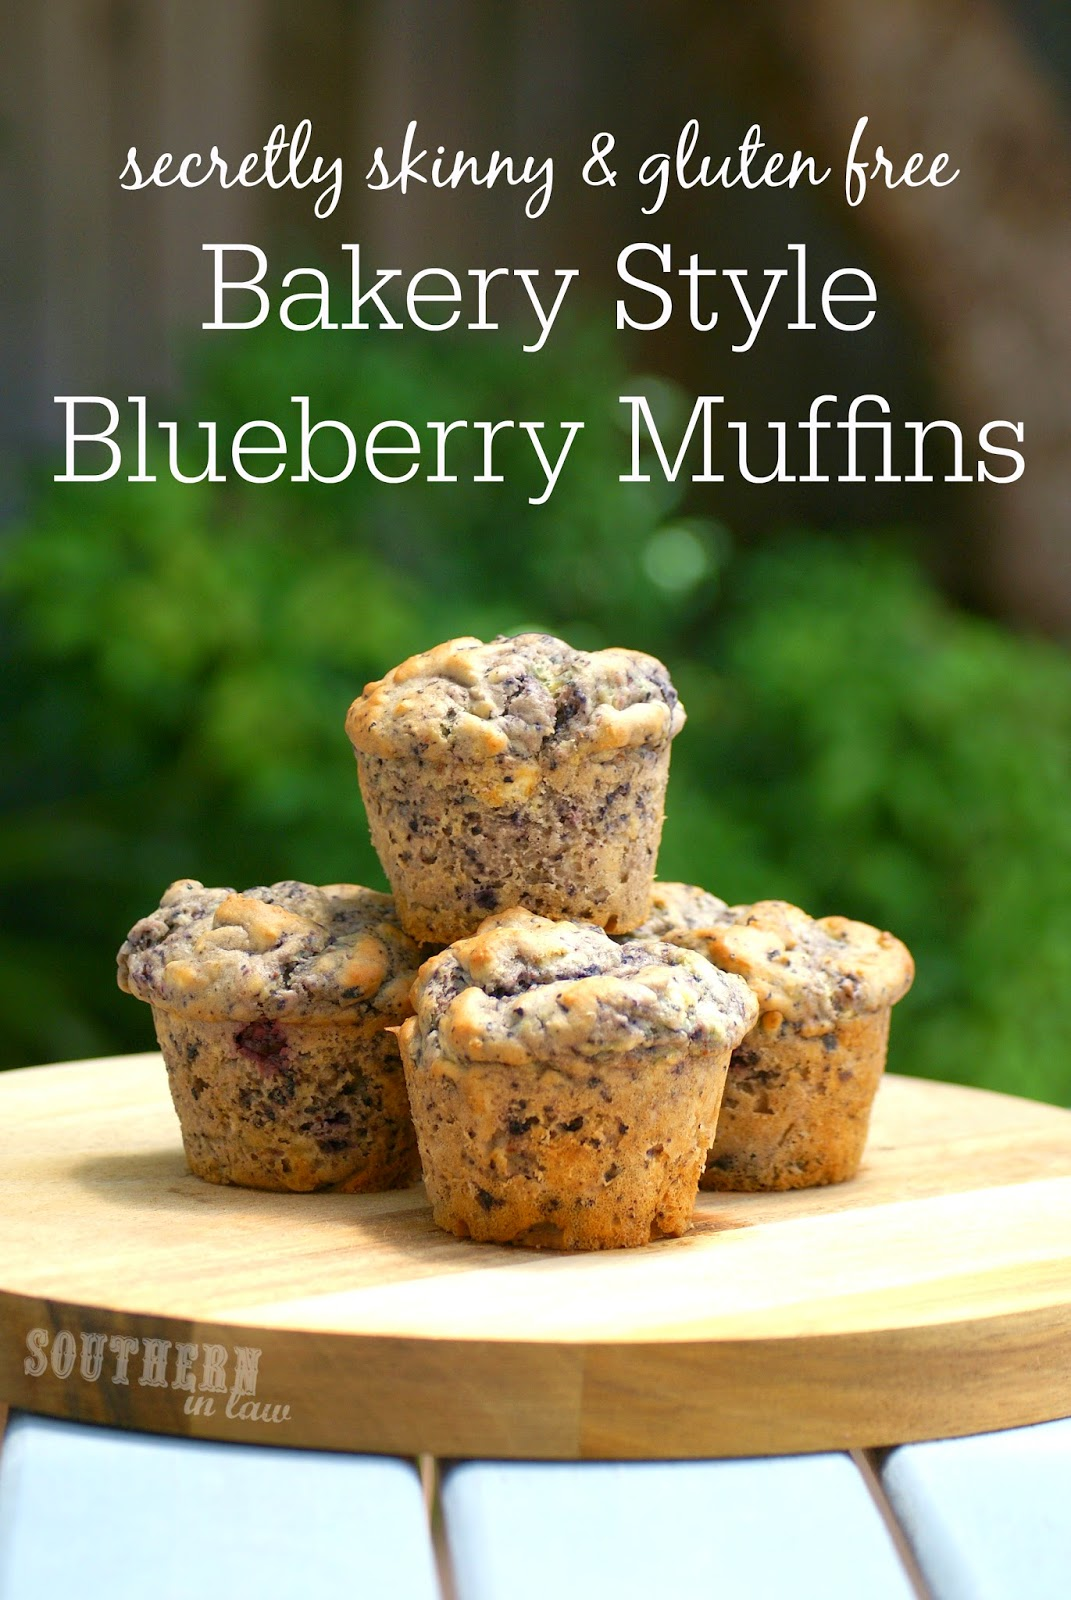 Southern In Law: Recipe: Healthy Bakery Style Blueberry Muffins